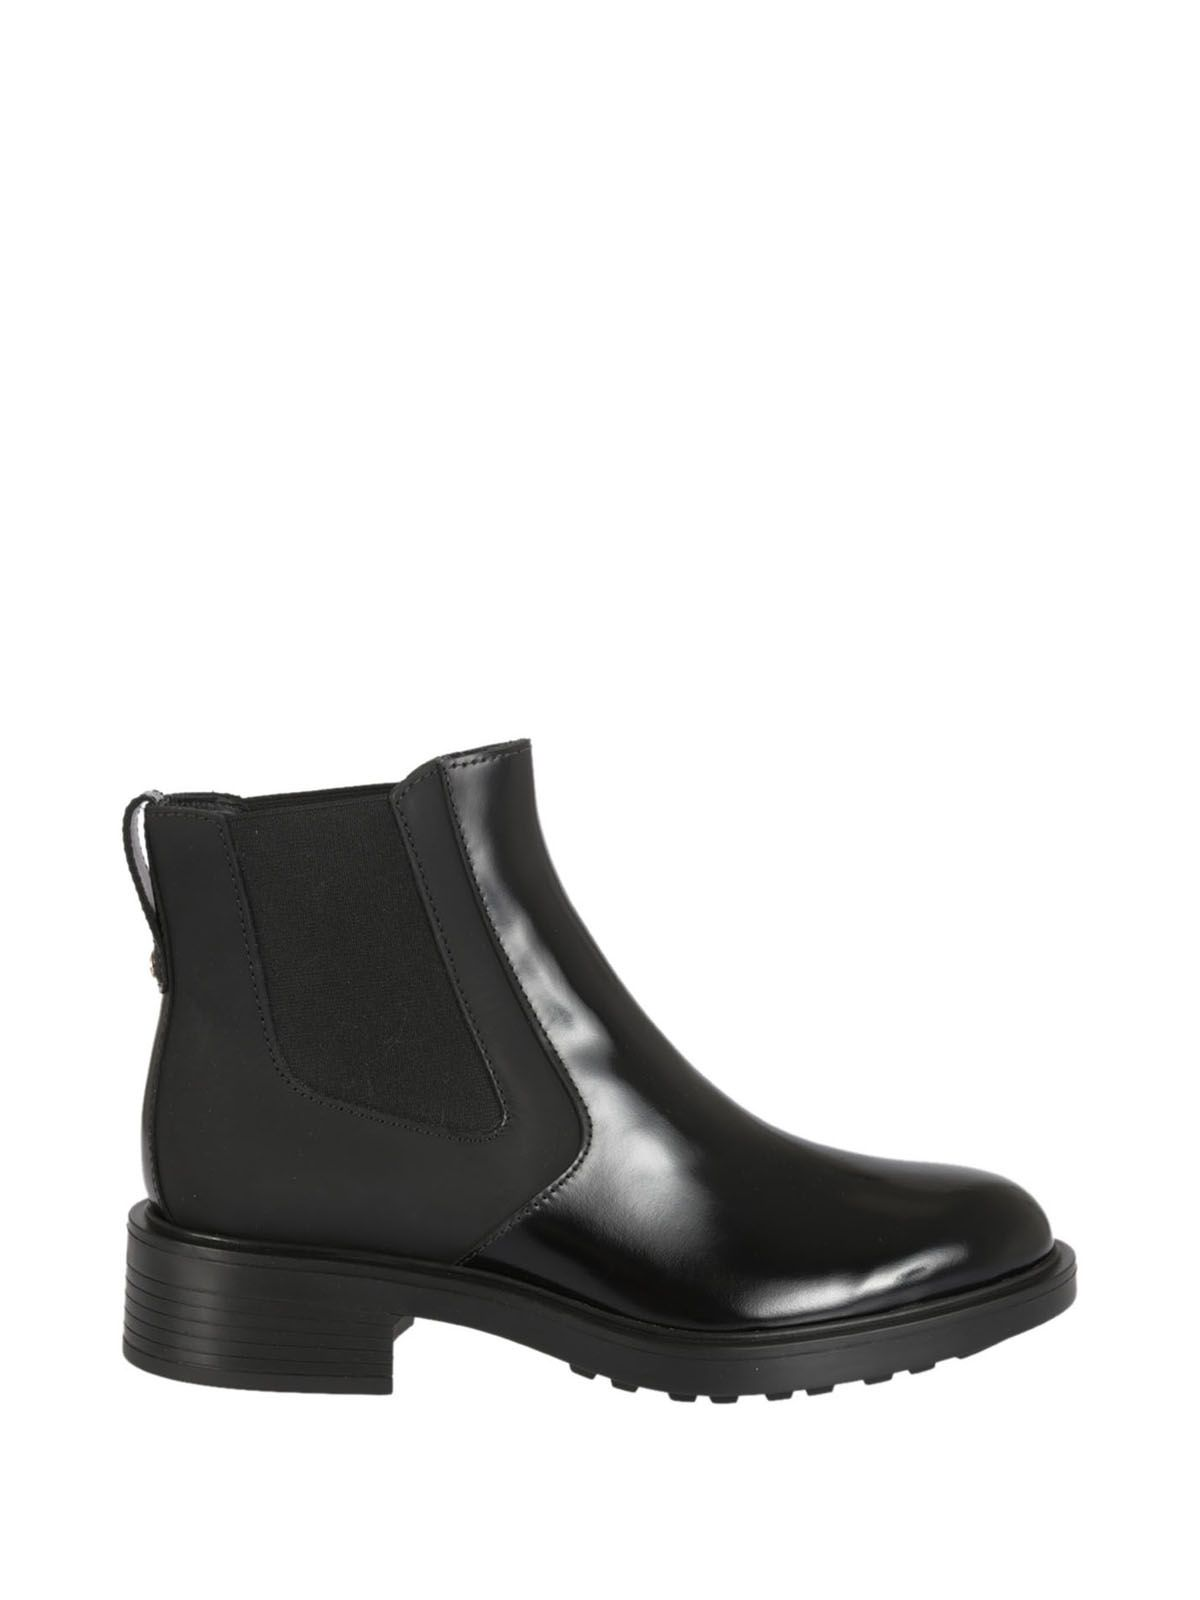 30MM BLACK LEATHER BOOTS